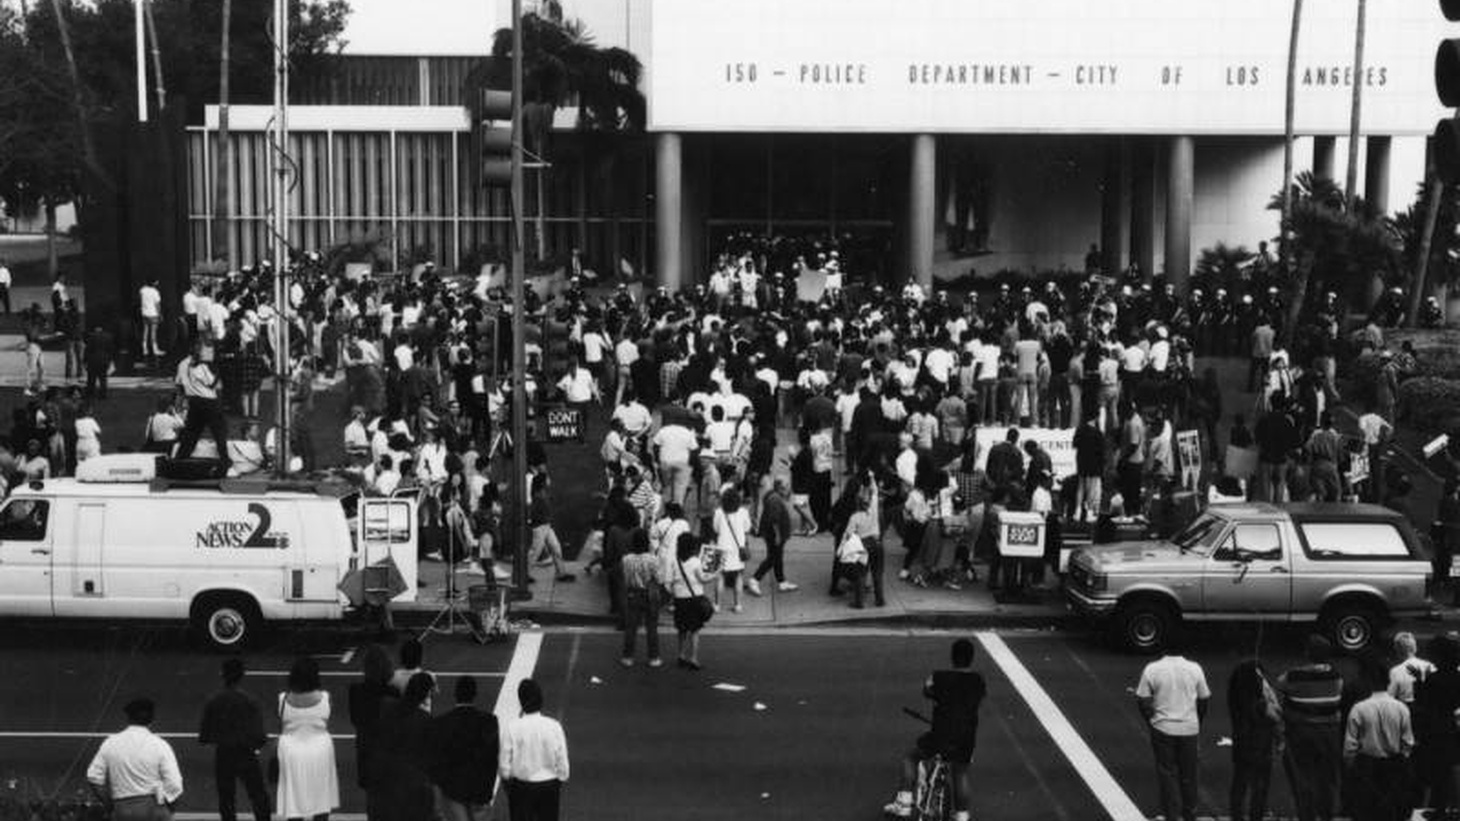 People gathered outside the Los Angeles Police Department during civil unrest on April 29, 1992, following the jury's decision in the Rodney King beating case.